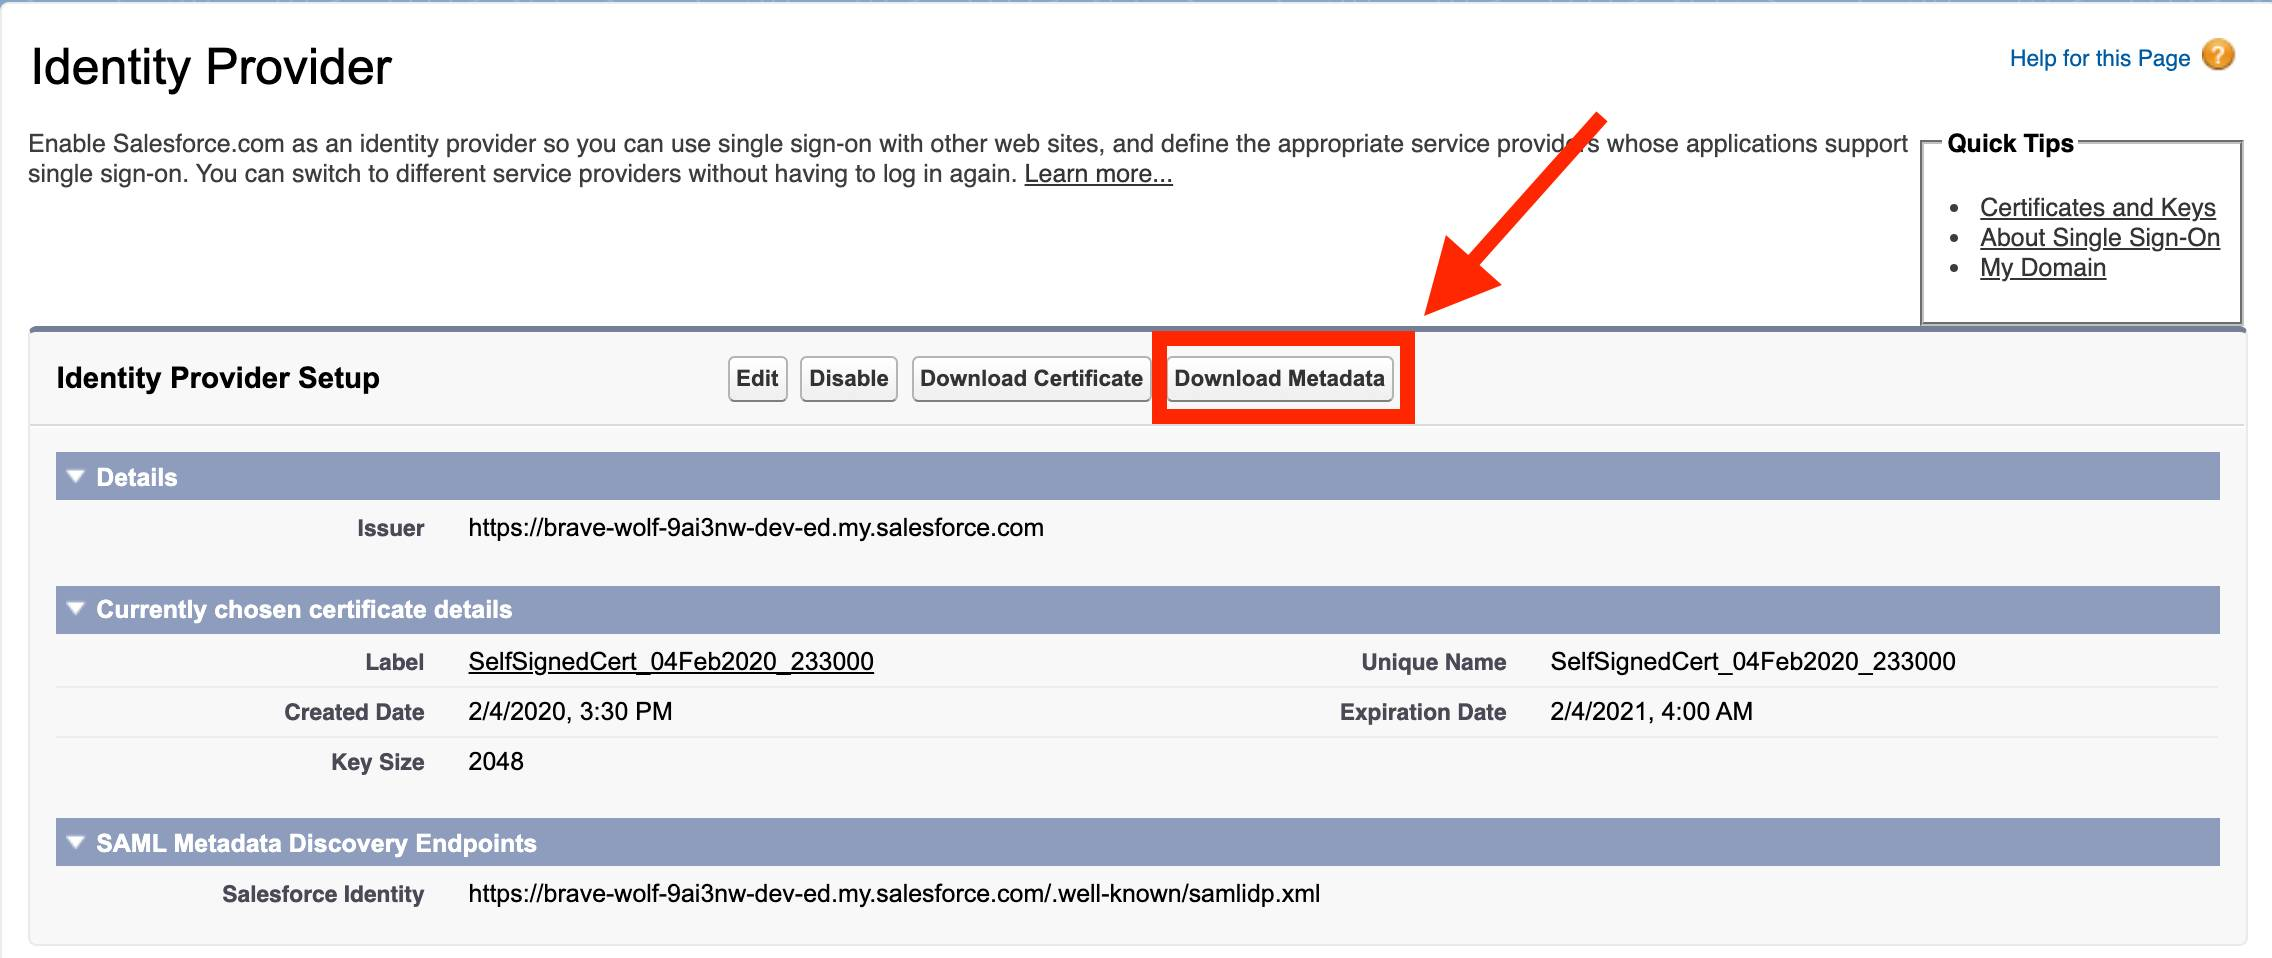 Salesforce Identity Provider page with Download Metadata button highlighted by a red box and arrow